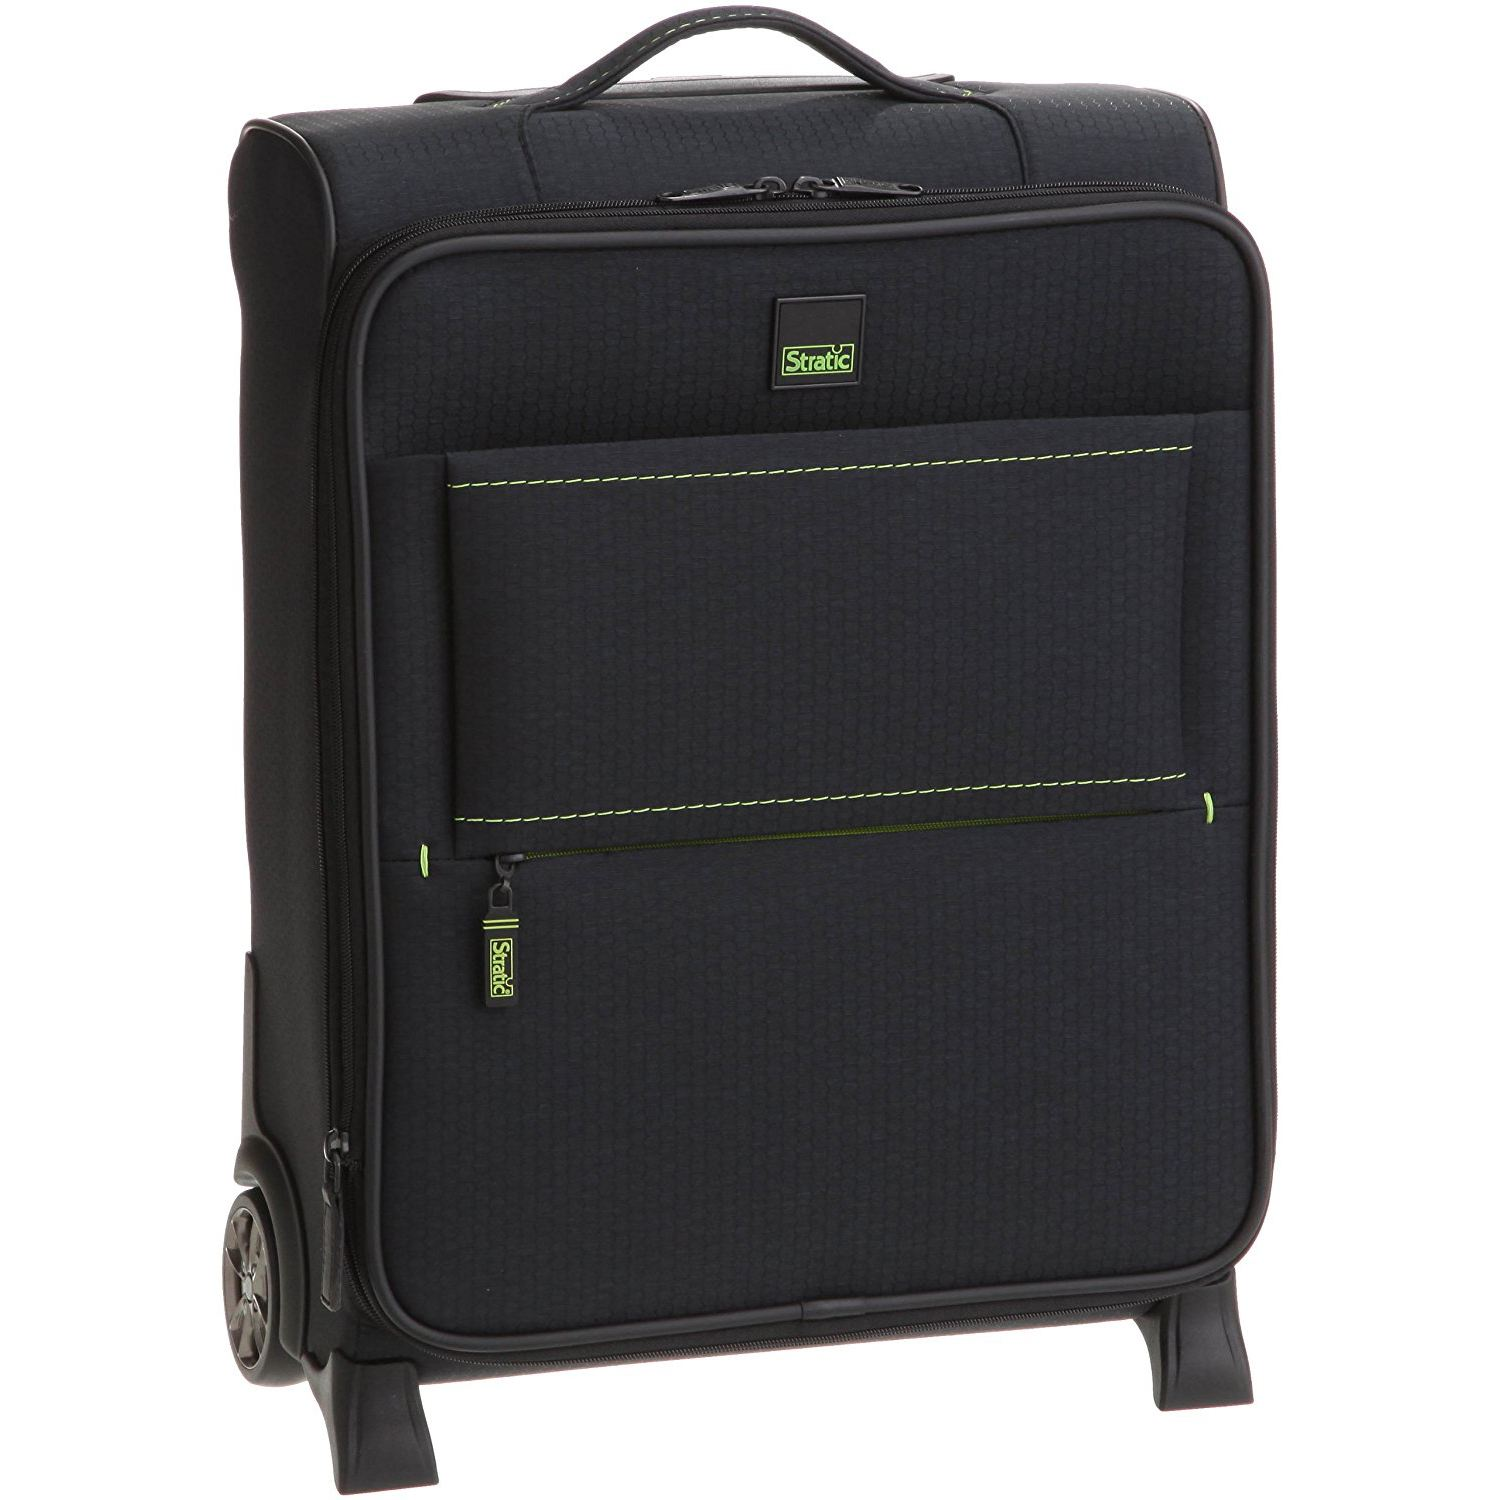 Stratic Agravic Trolley